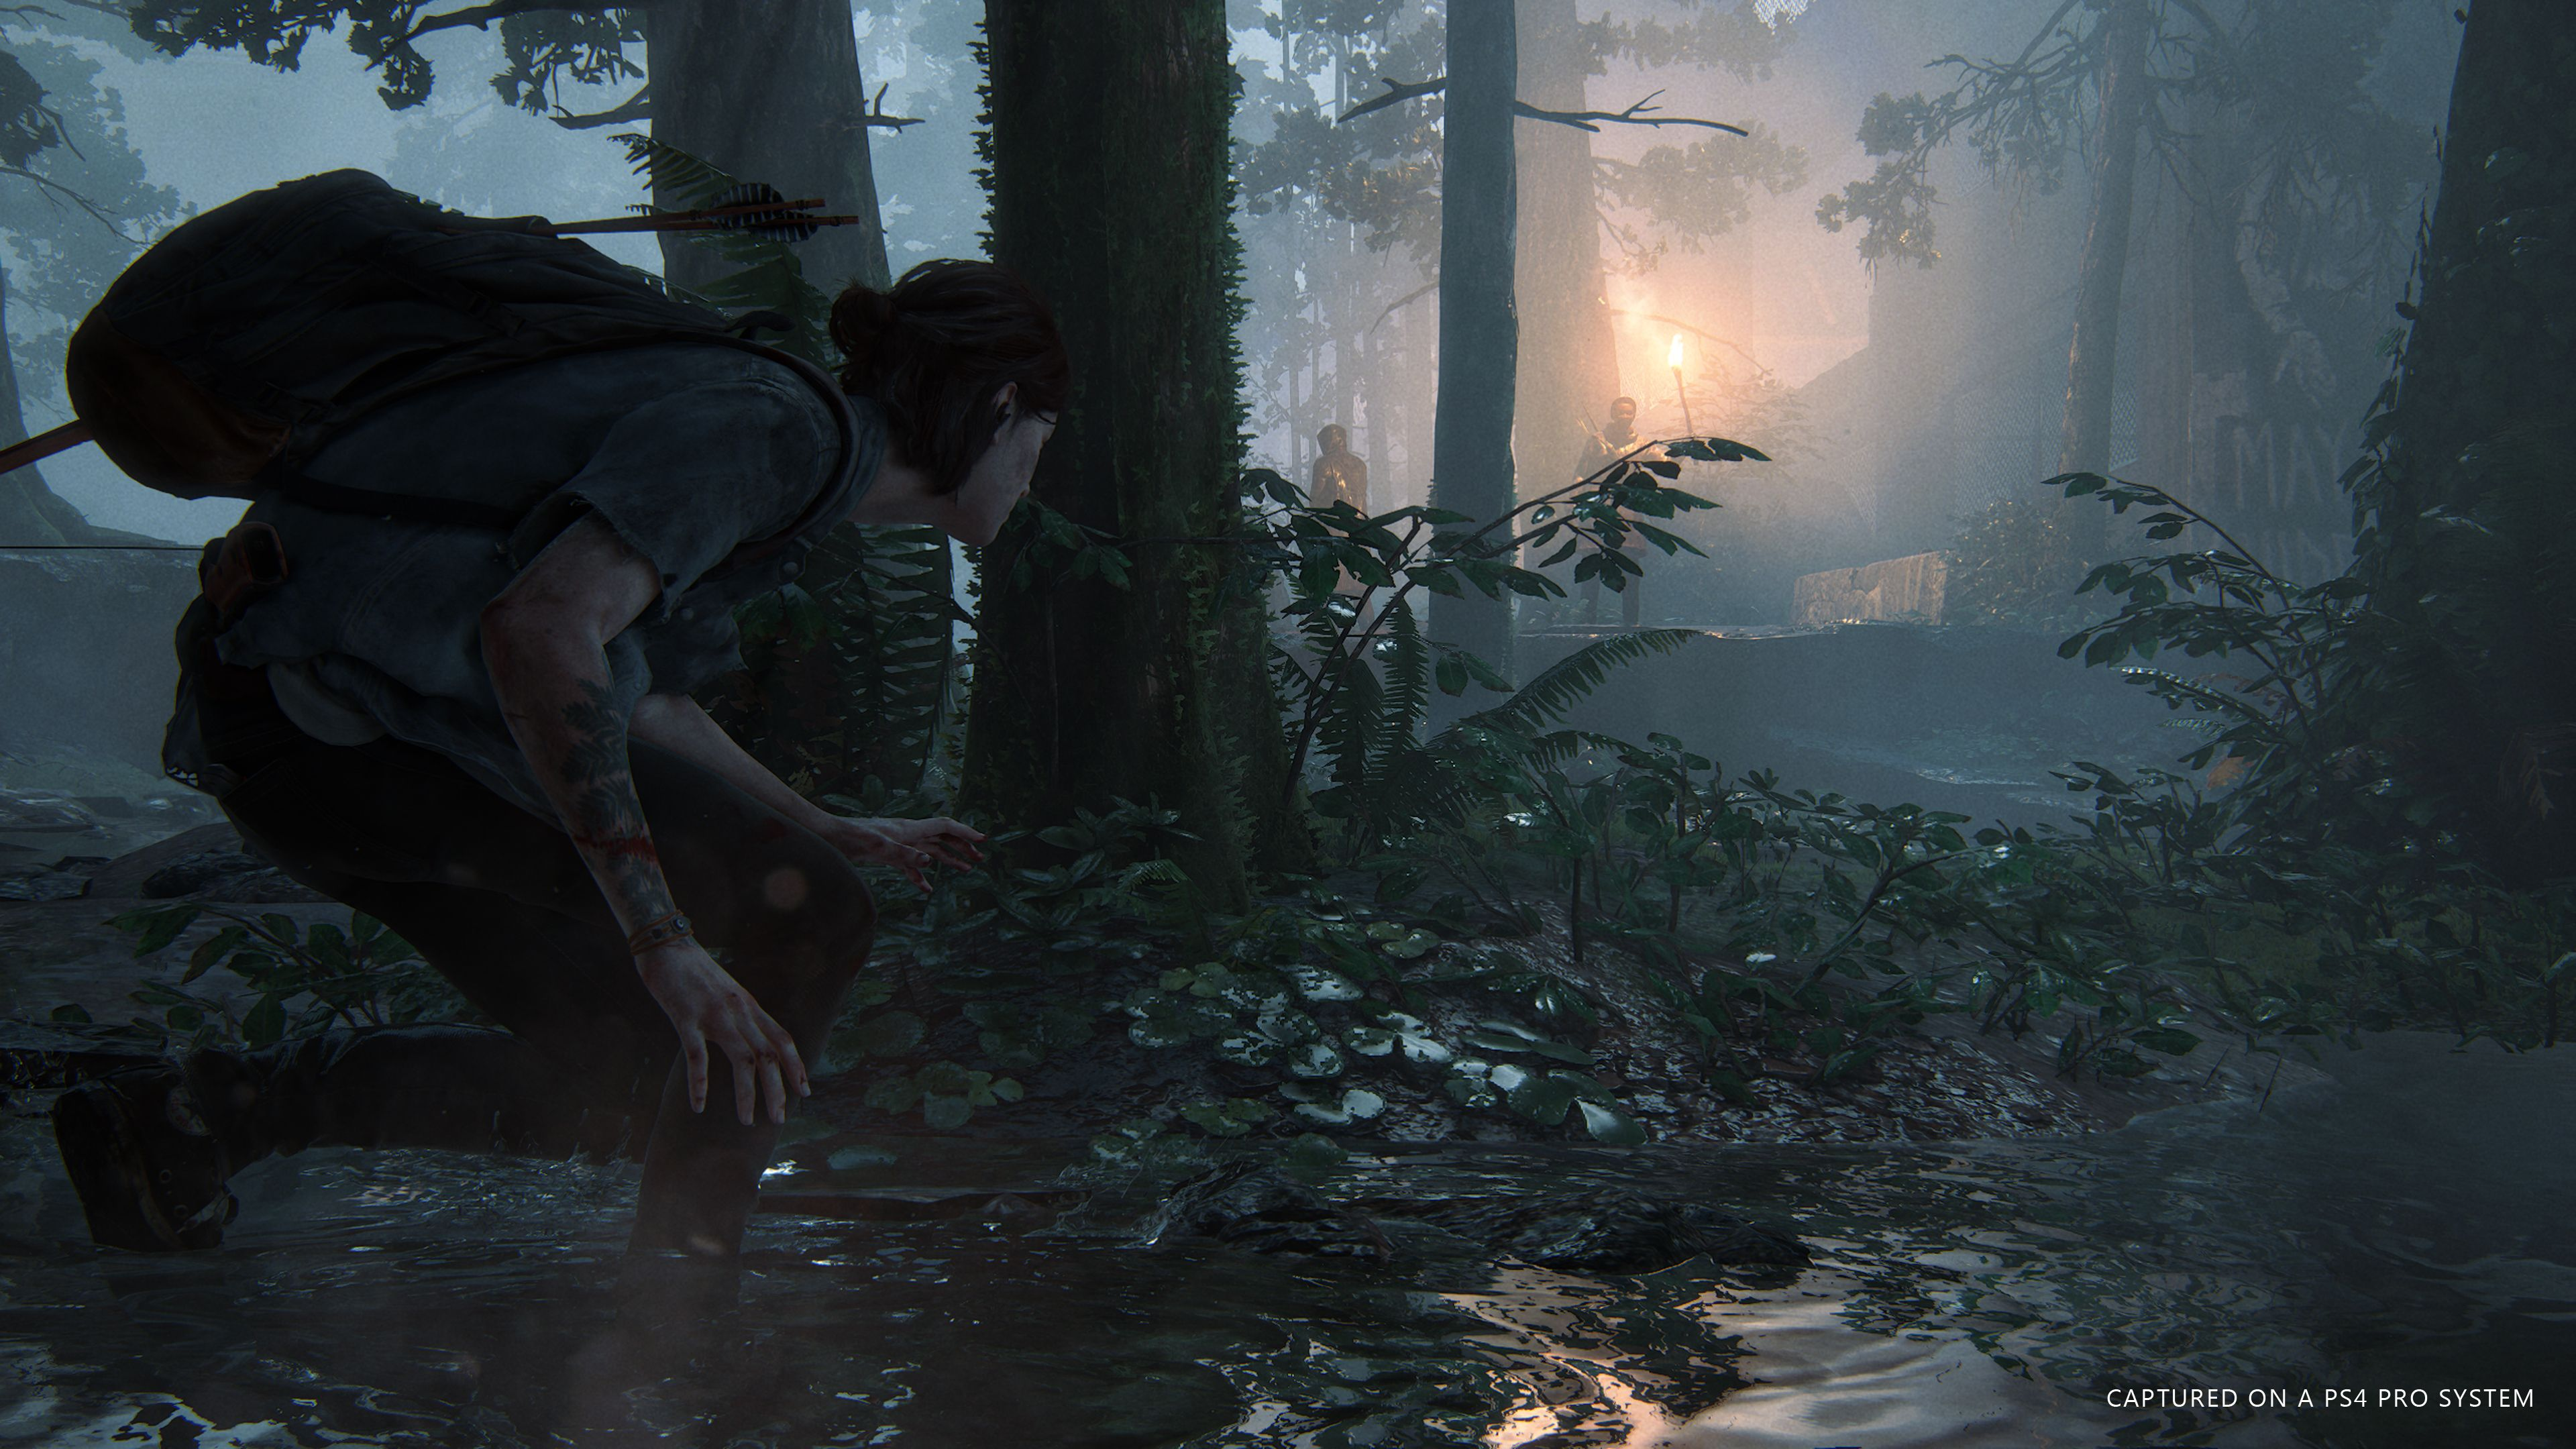 The Last Of Us Part Ii Screenshots Captured On Ps4 Pro Are Gritty And Beautiful The Last Of Us E3 2018 Uncharted